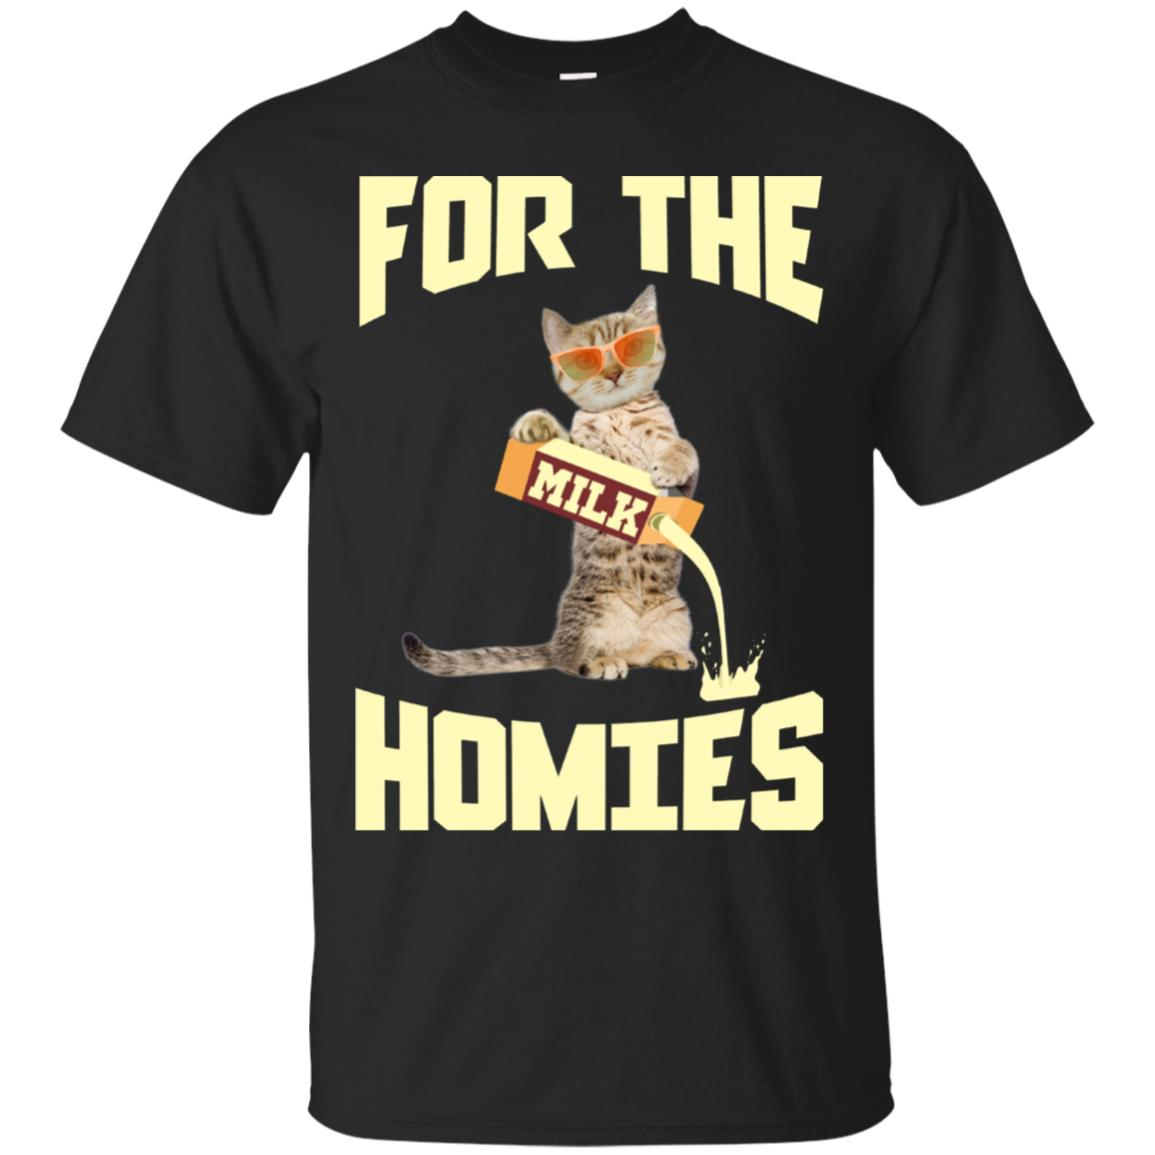 Cat Shirt - For the Homies 99promocode